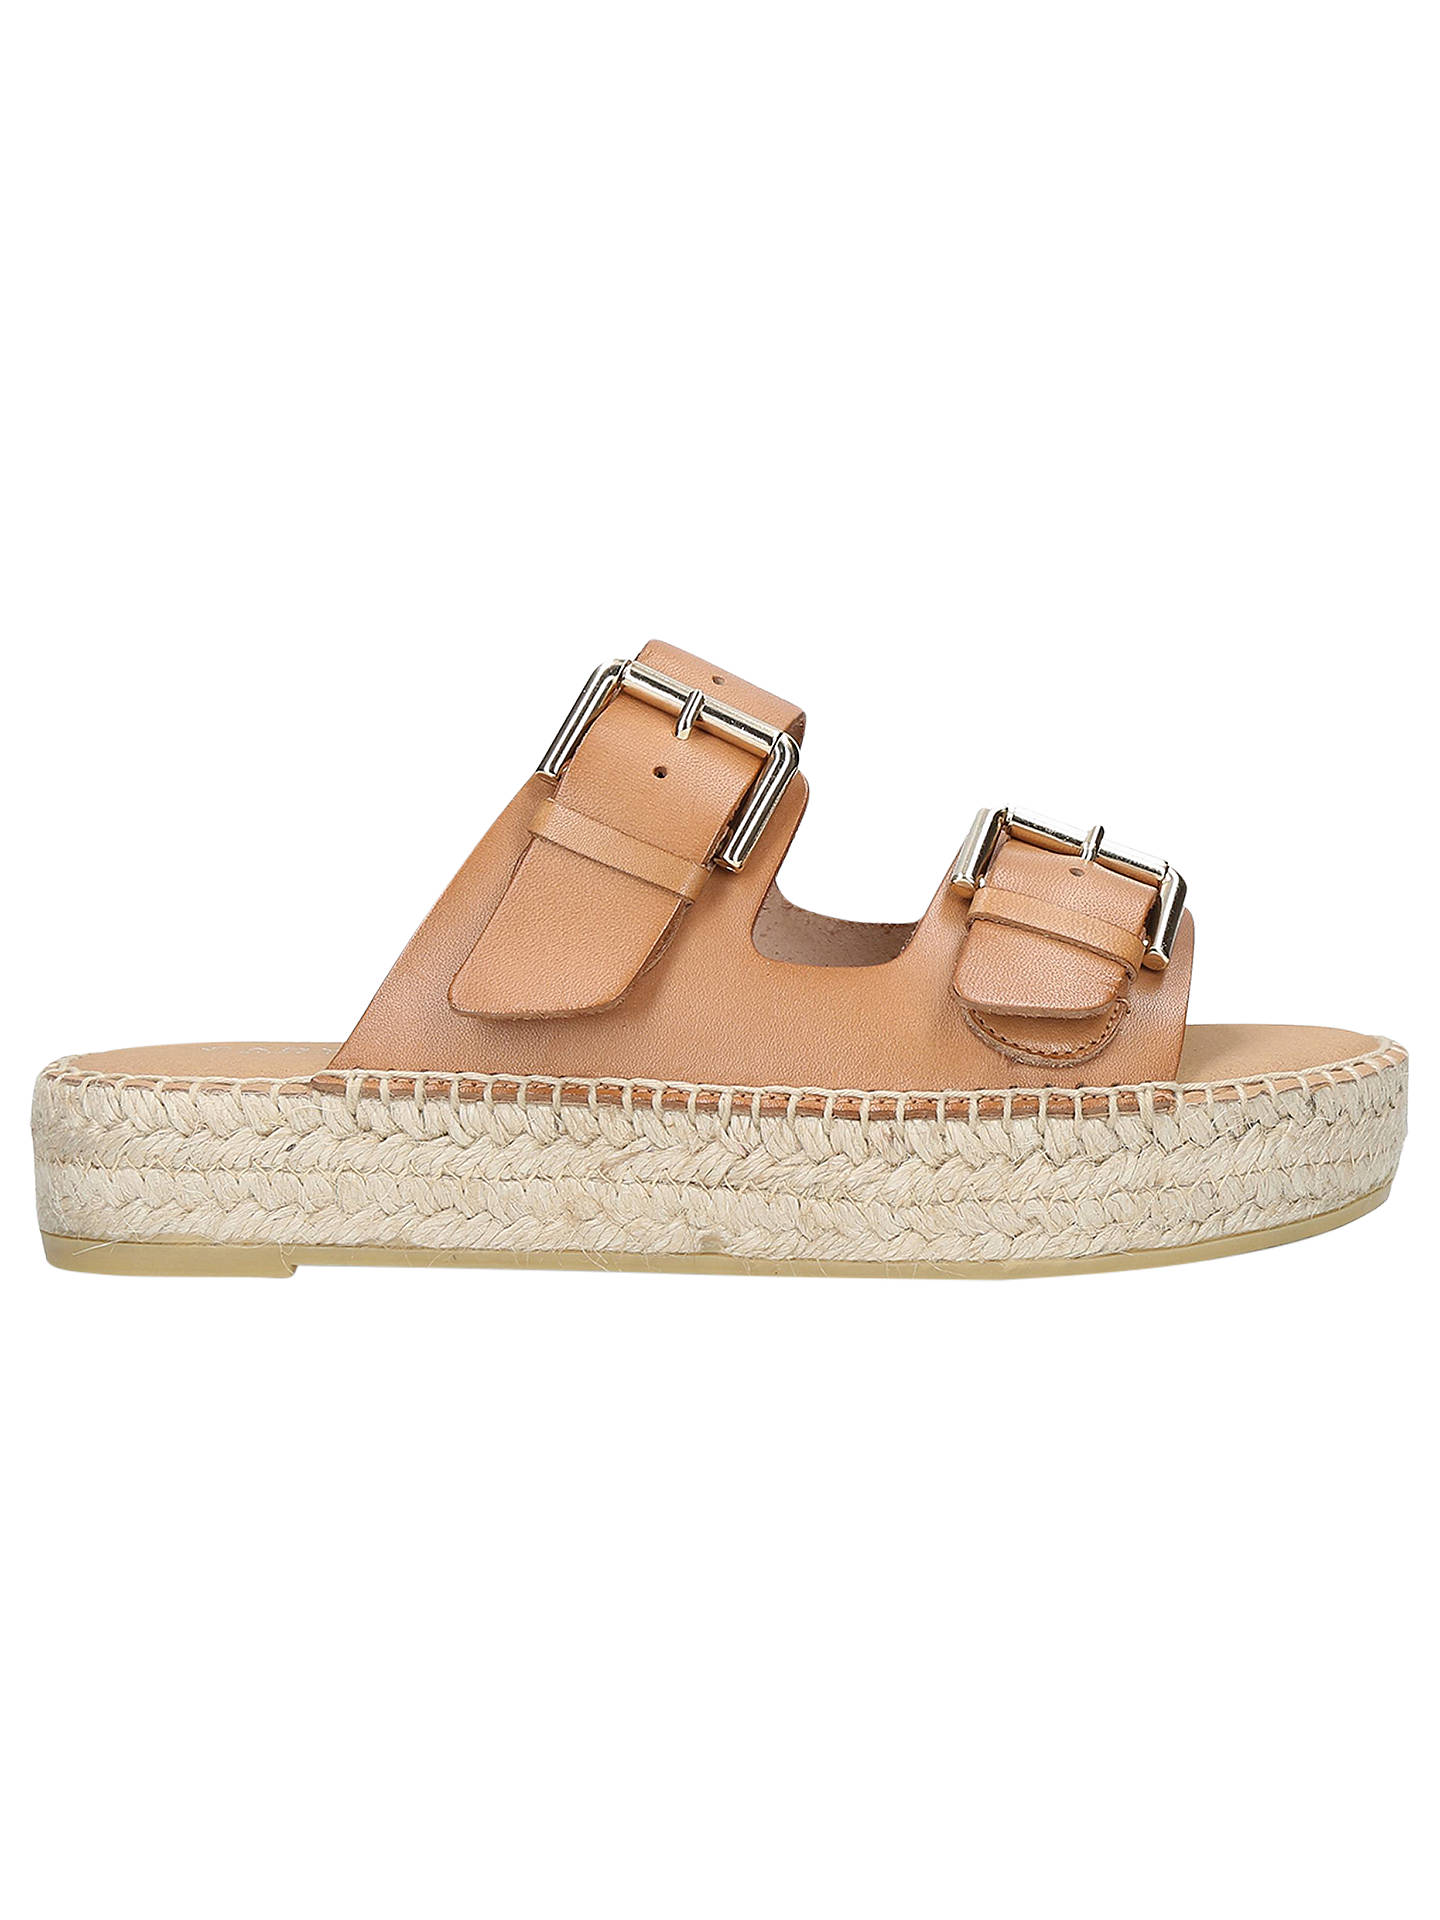 337bb39ee097e3 Carvela Klever Sandals at John Lewis   Partners